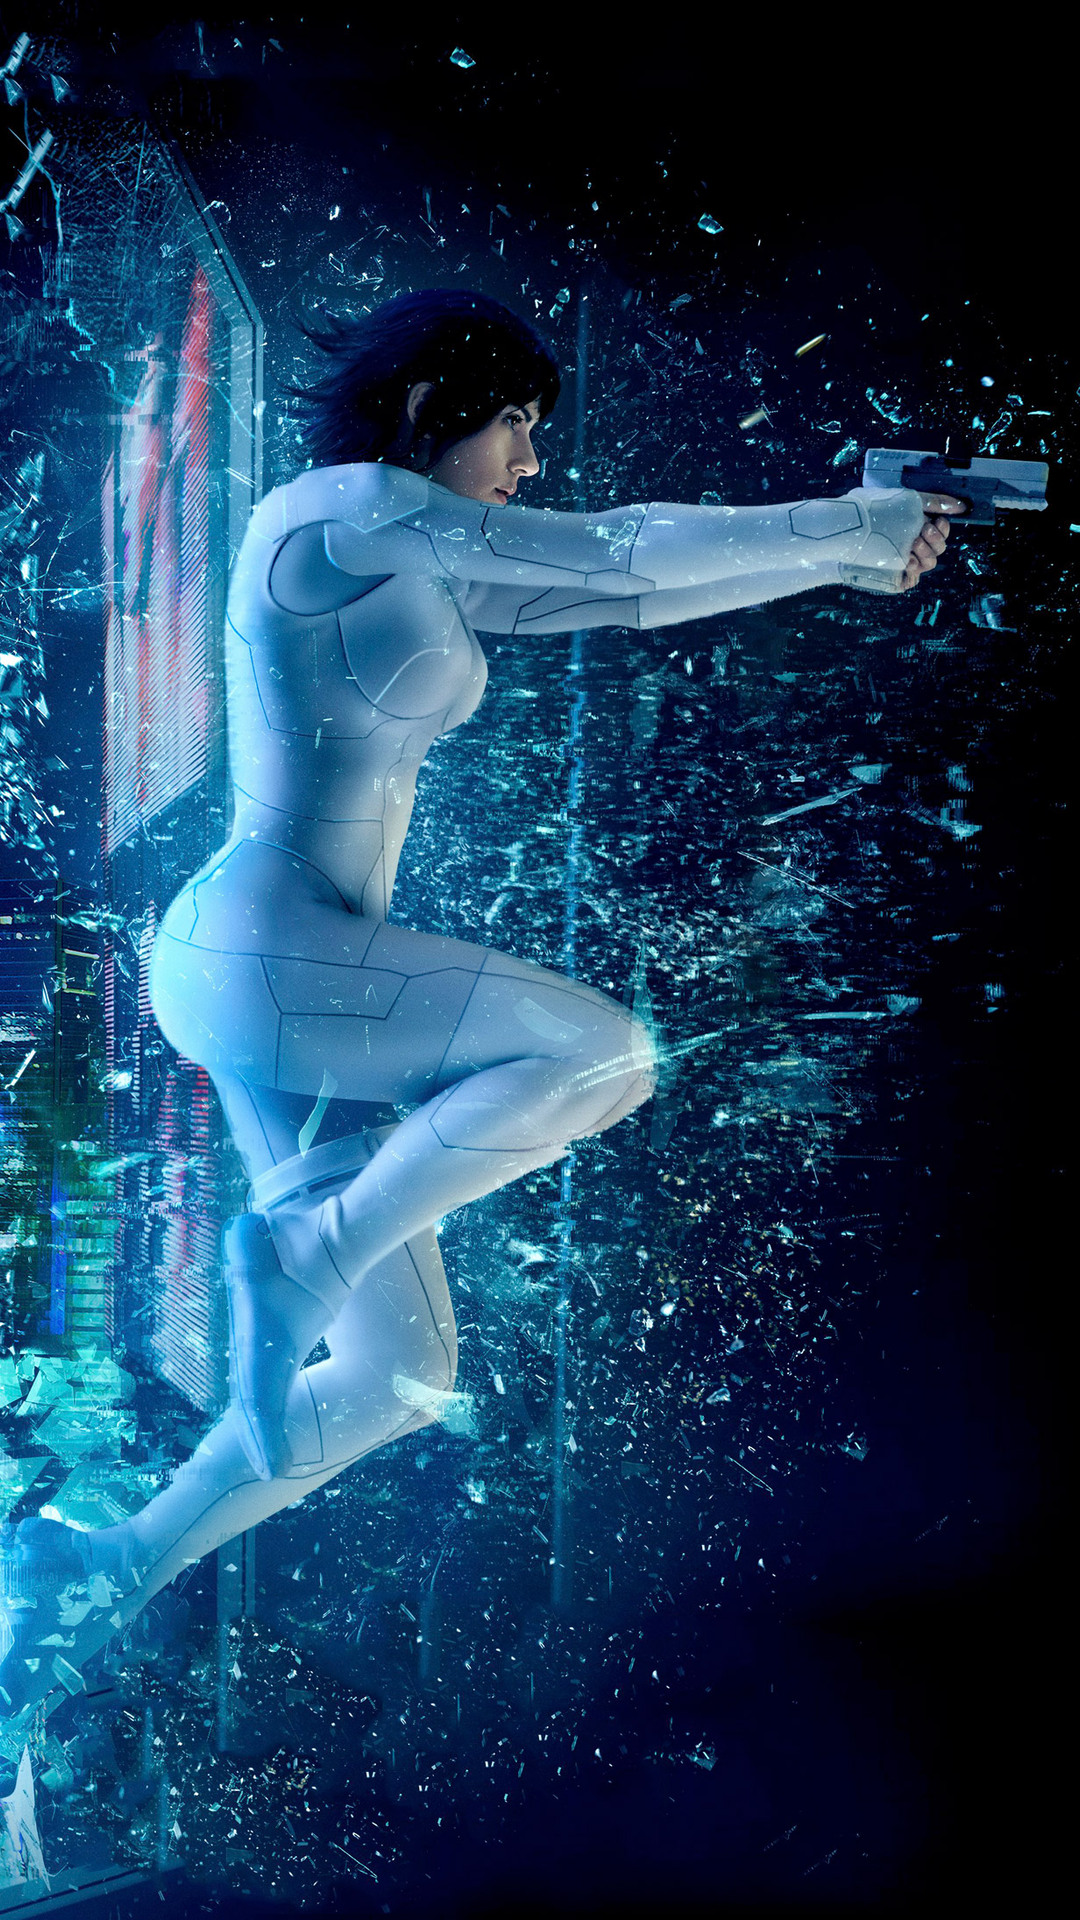 1080x1920 Ghost In The Shell 2017 Movie Iphone 7 6s 6 Plus